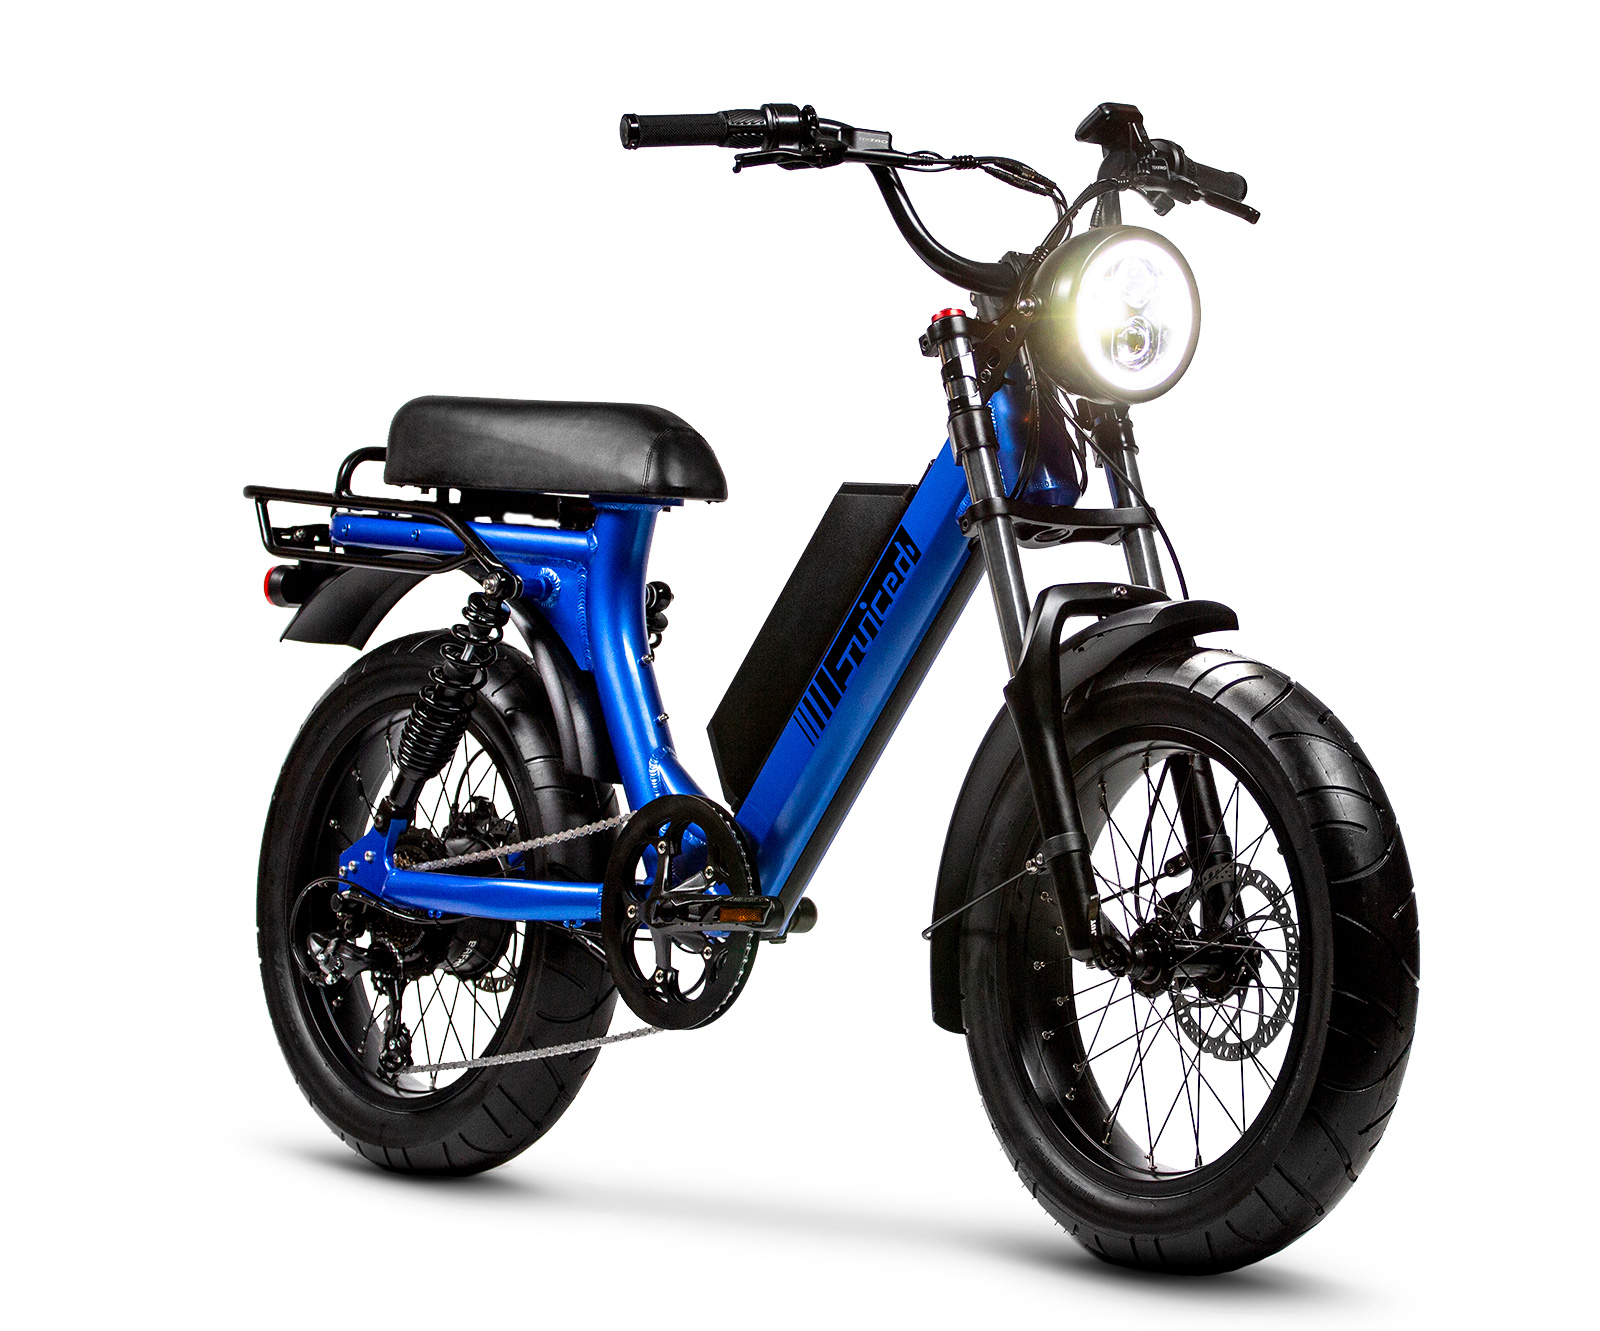 The All-Electric Juiced Scorpion Looks Like a Modern Moped at werd.com